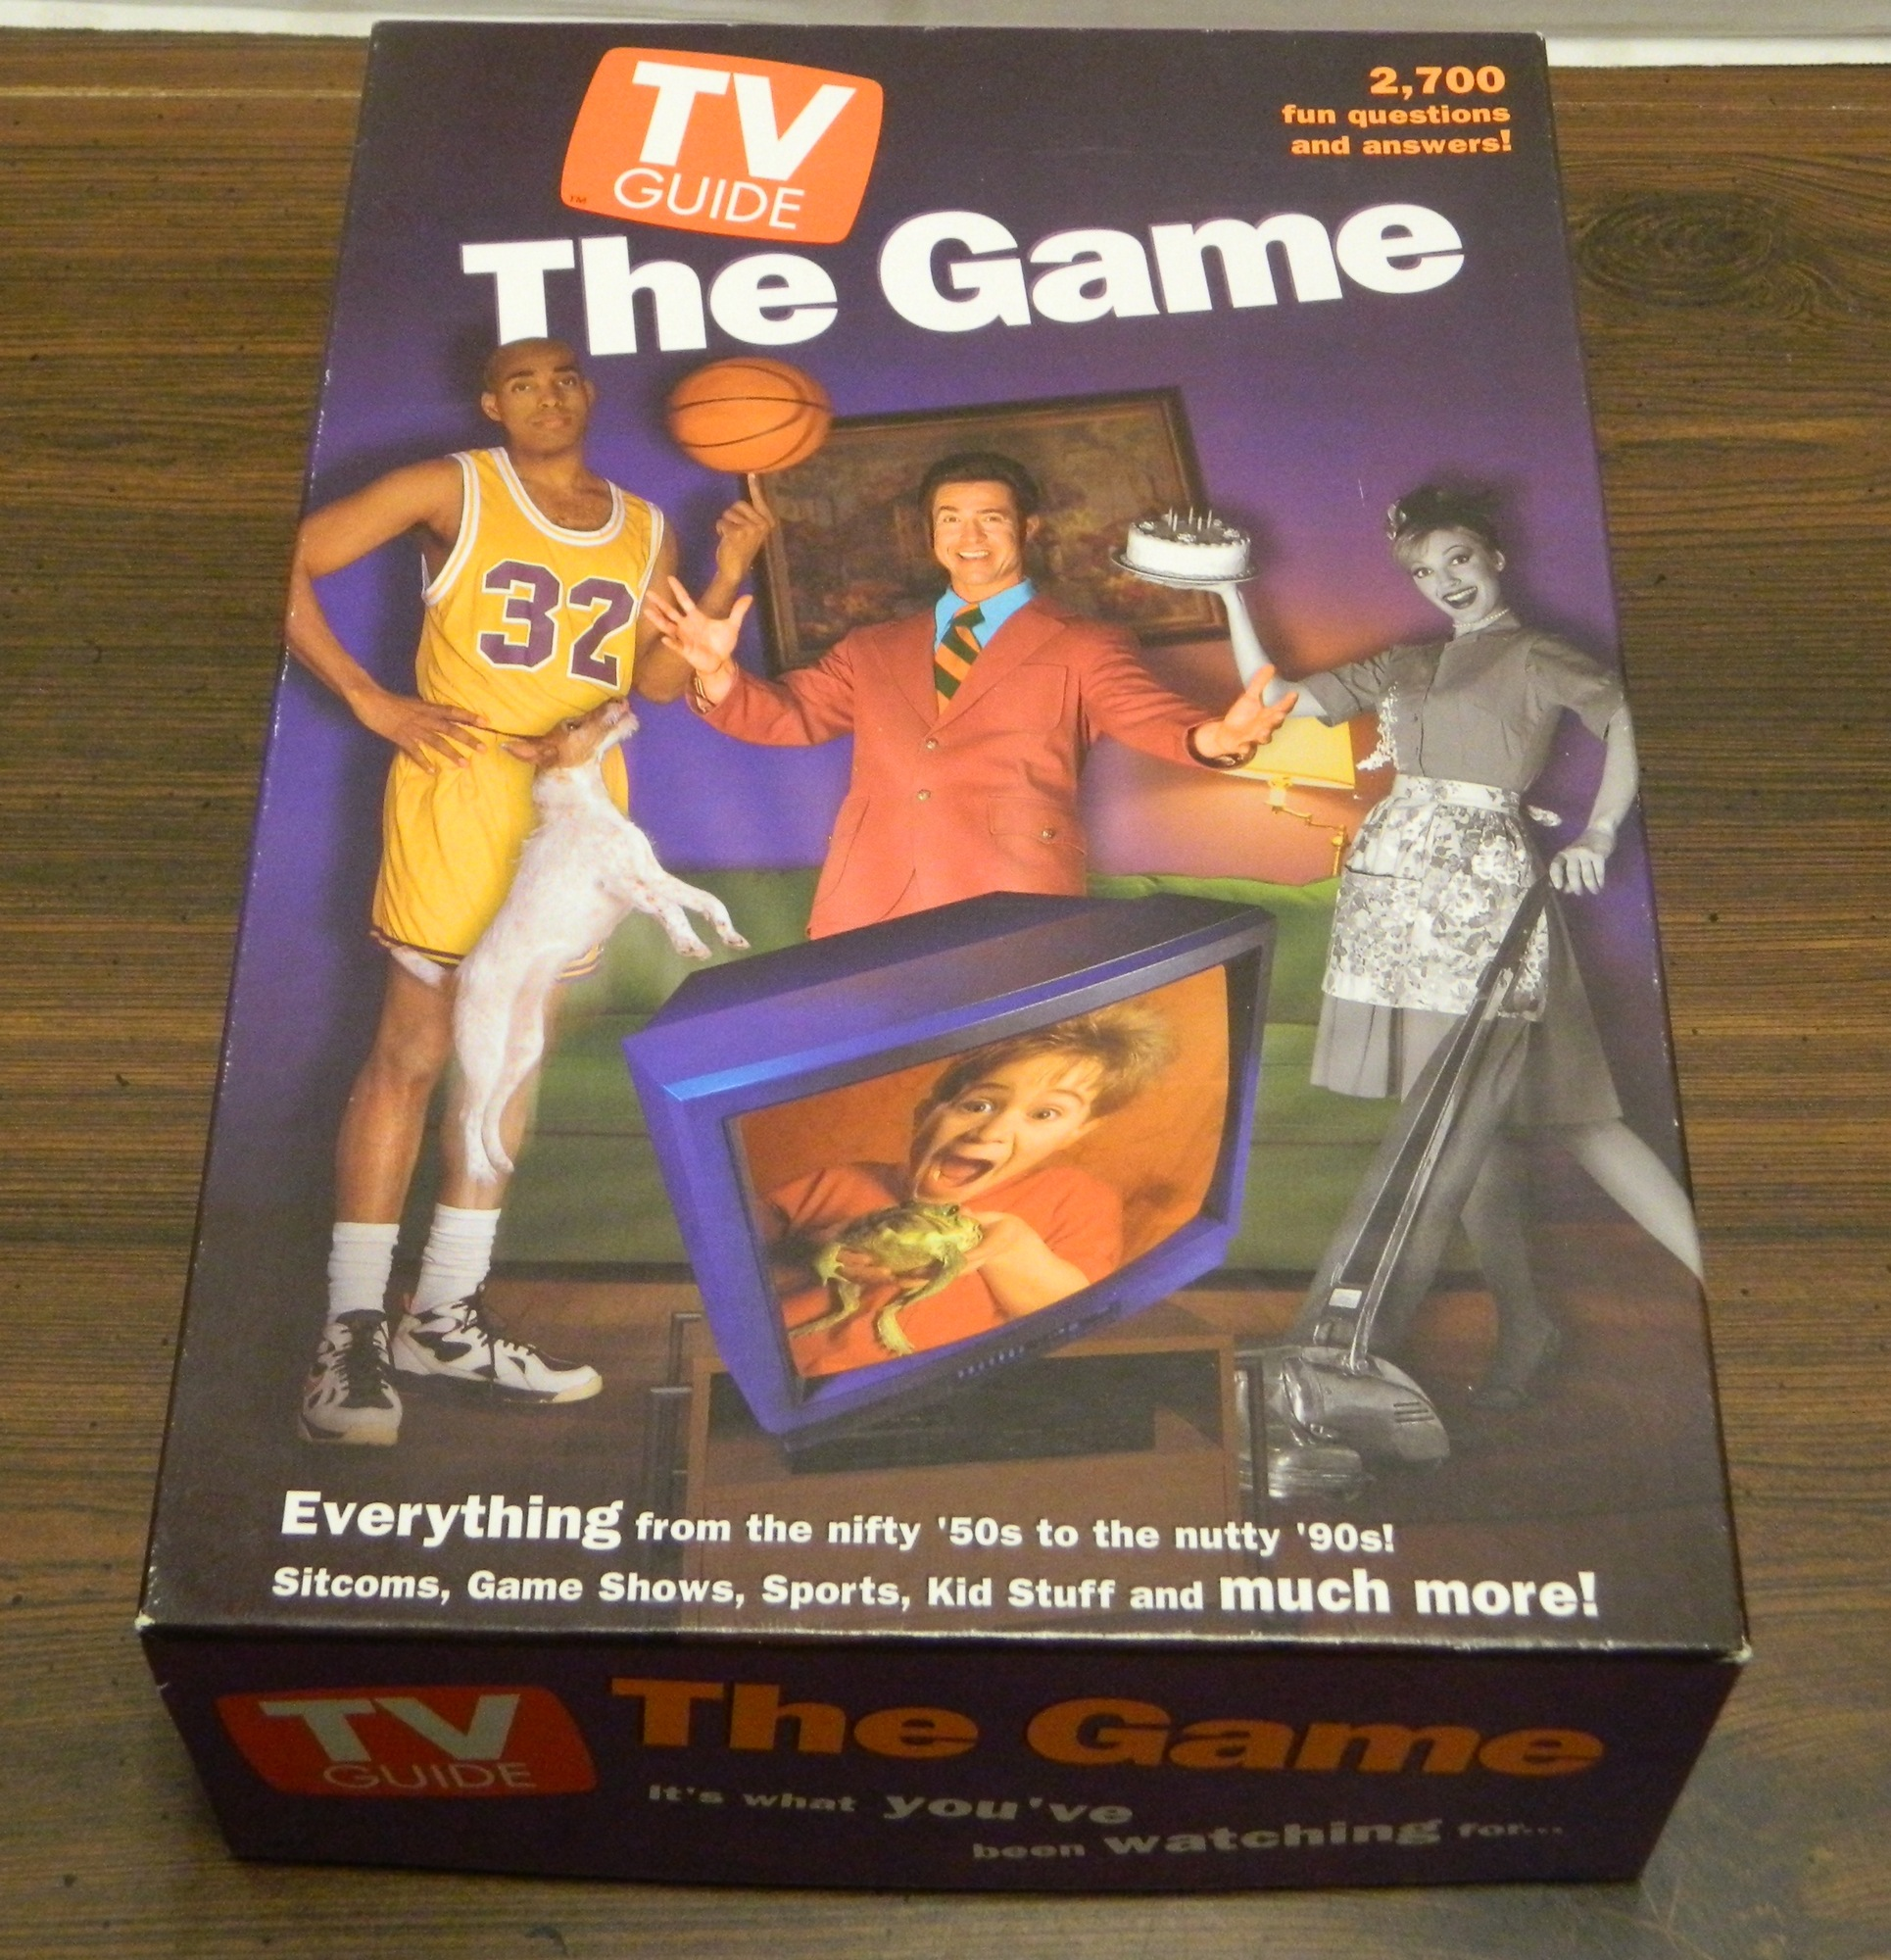 TV Guide The Game Board Game Box